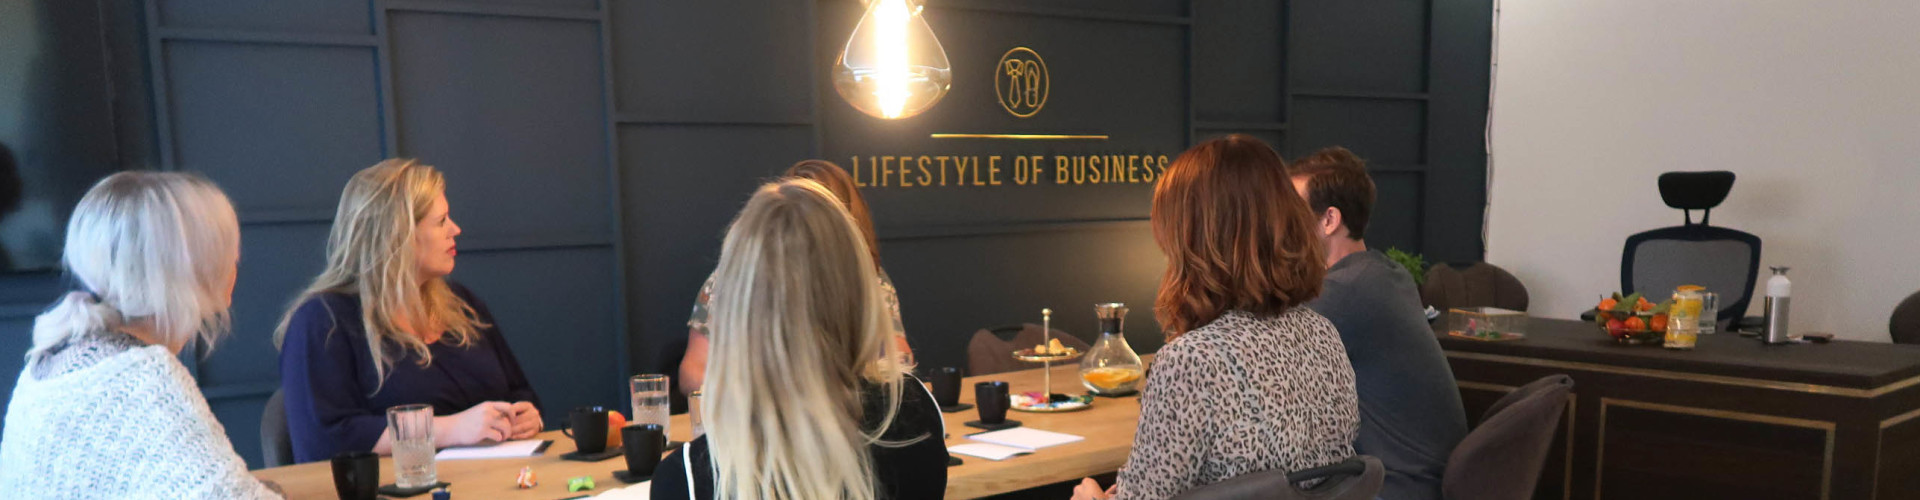 Lifestyle of Business Club header| Jeanet Wolf